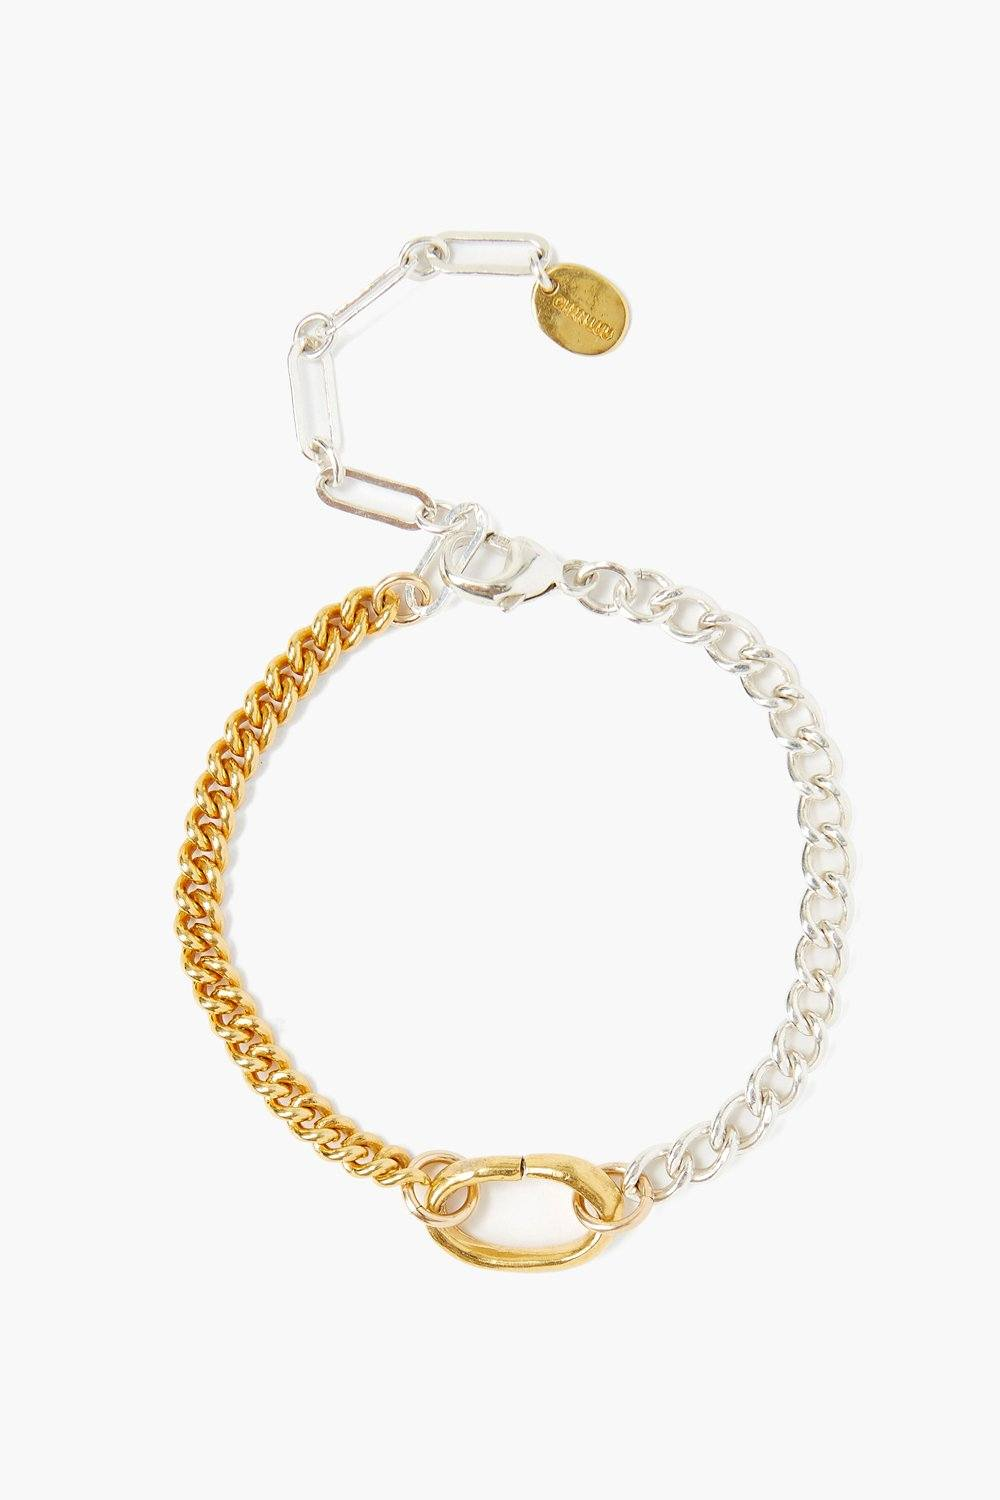 Sculptural Ring Gold and Silver Chain Link Bracelet